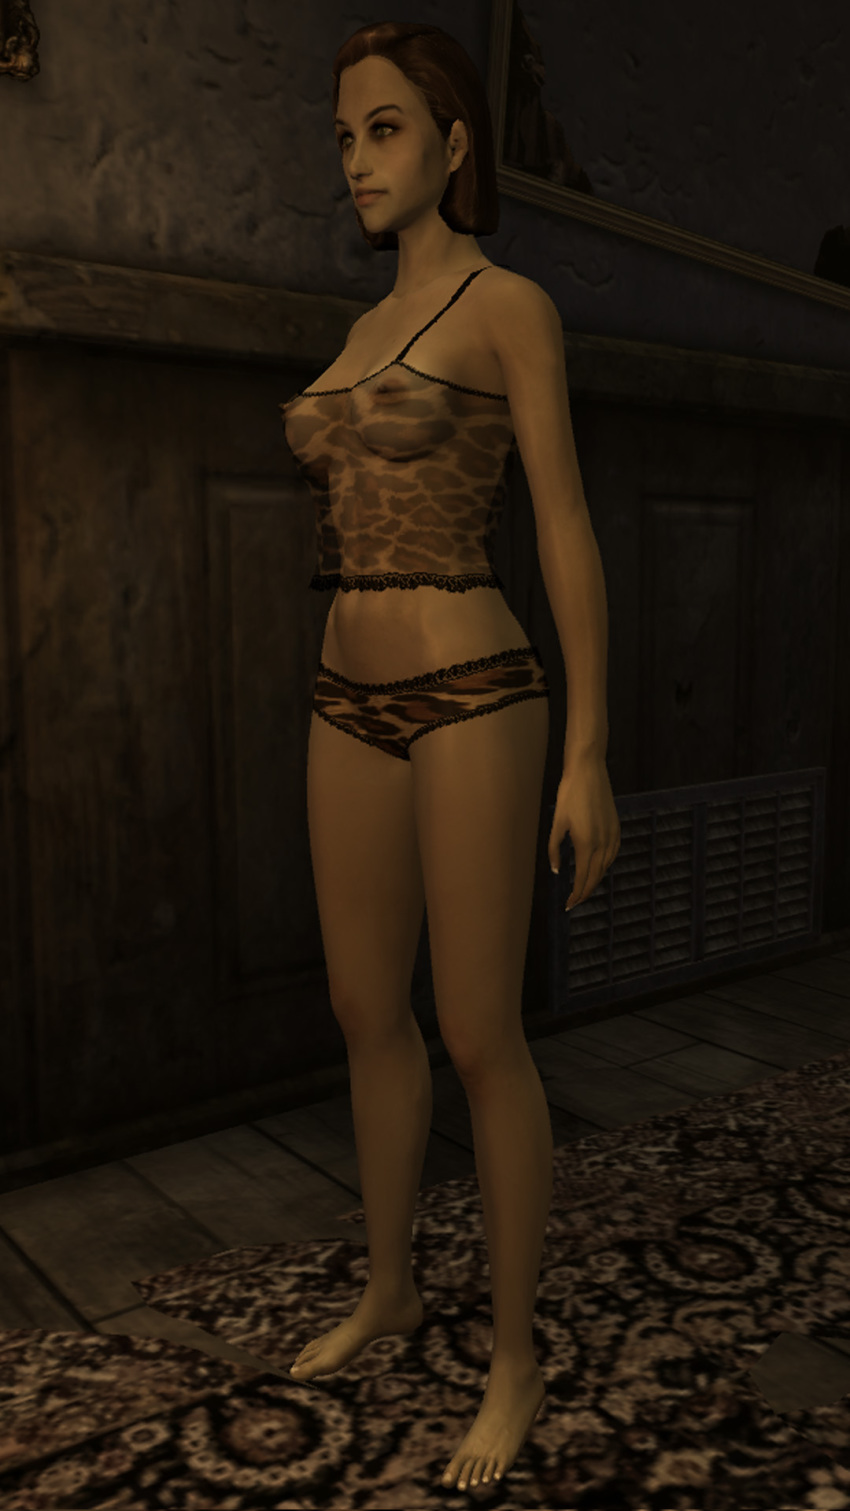 new pretty vegas fallout sarah Elizabeth from the seven deadly sins